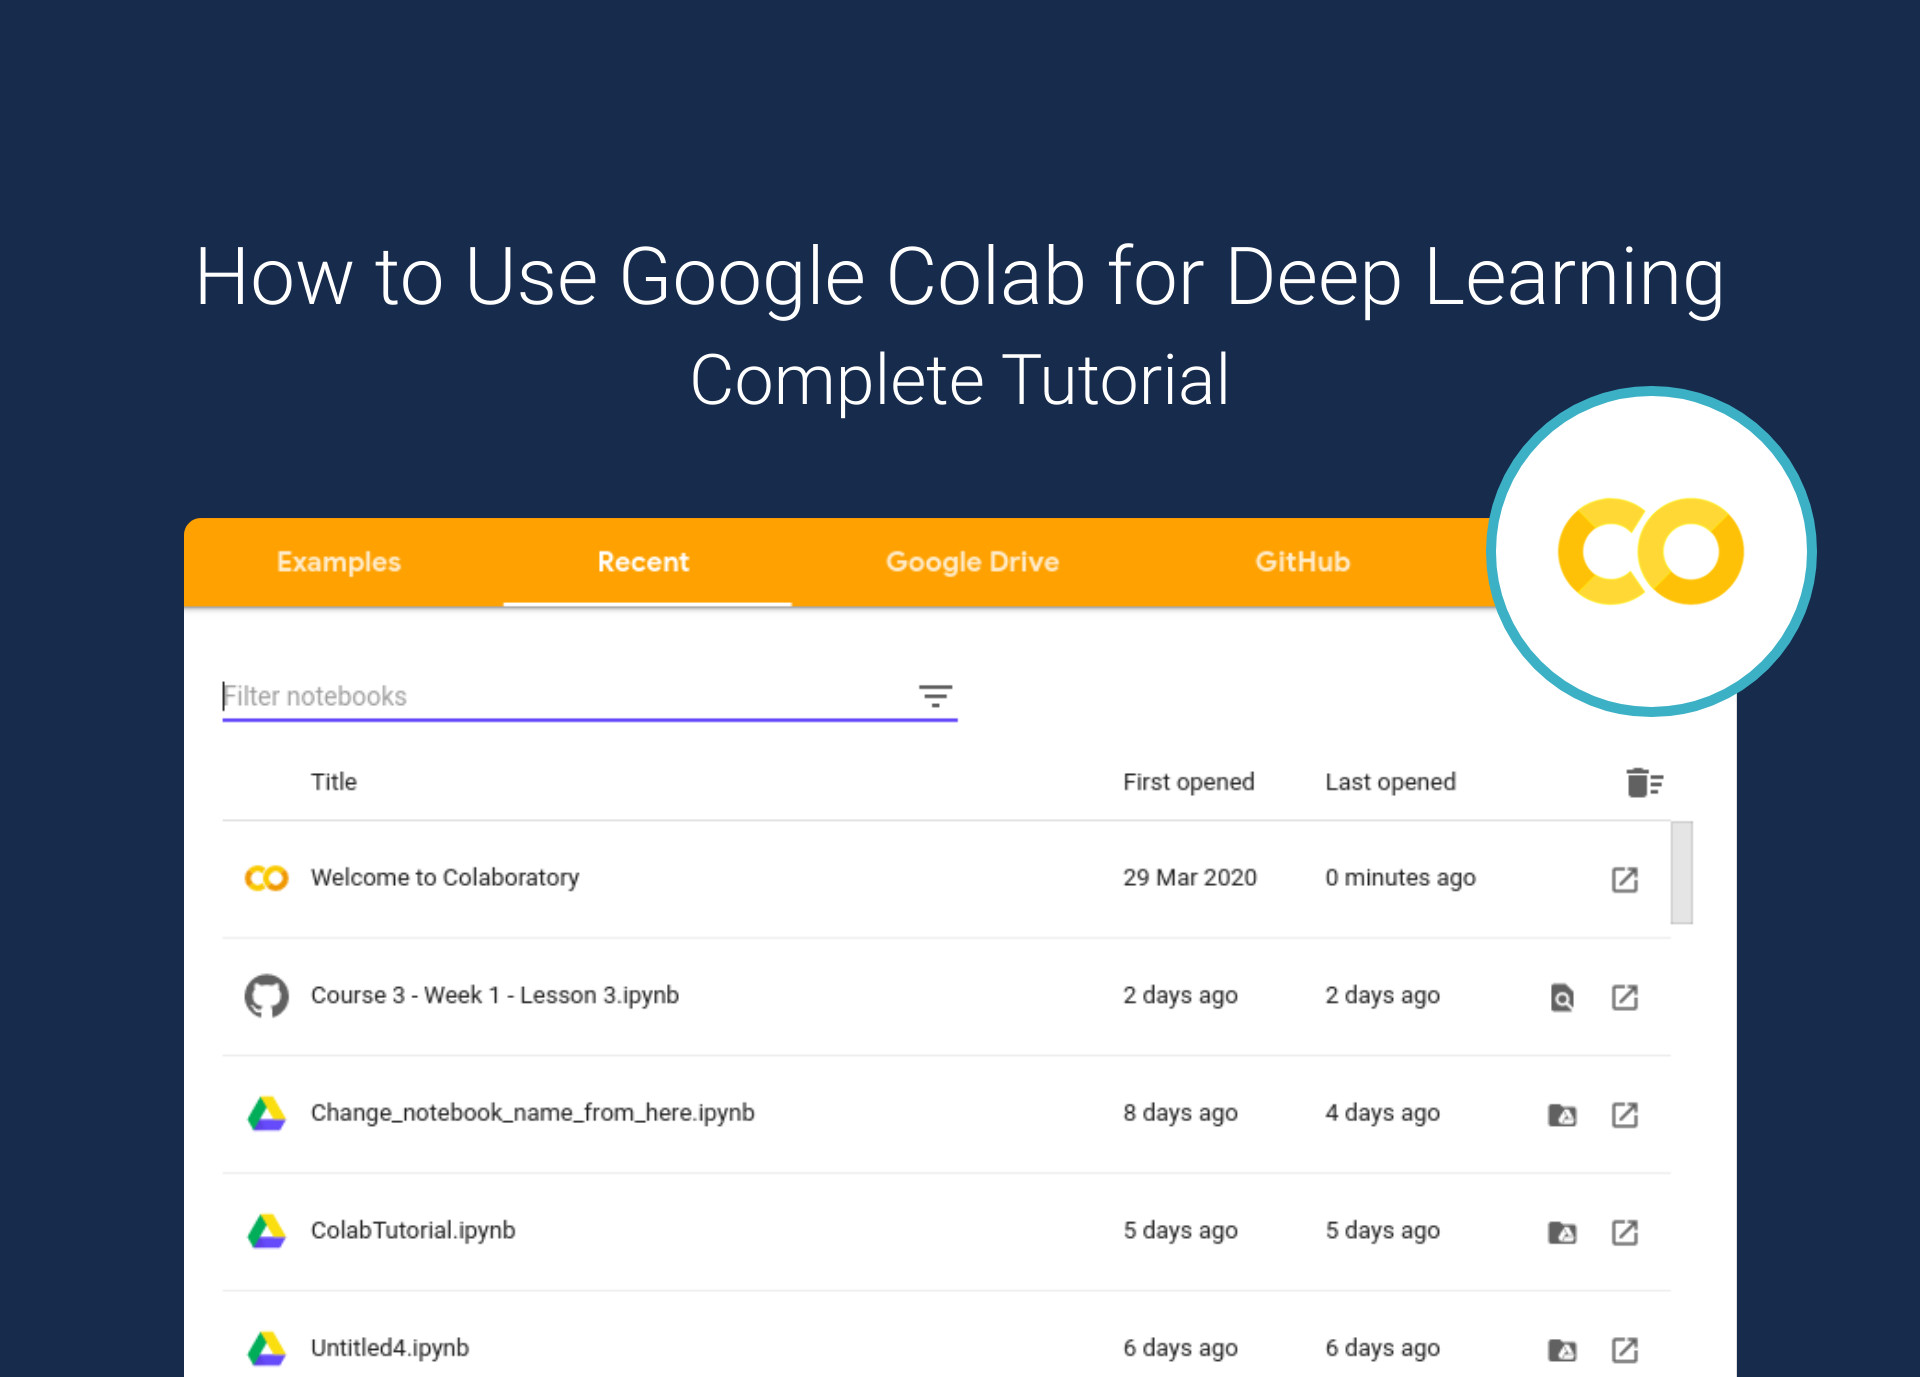 Google Colab for deep learning